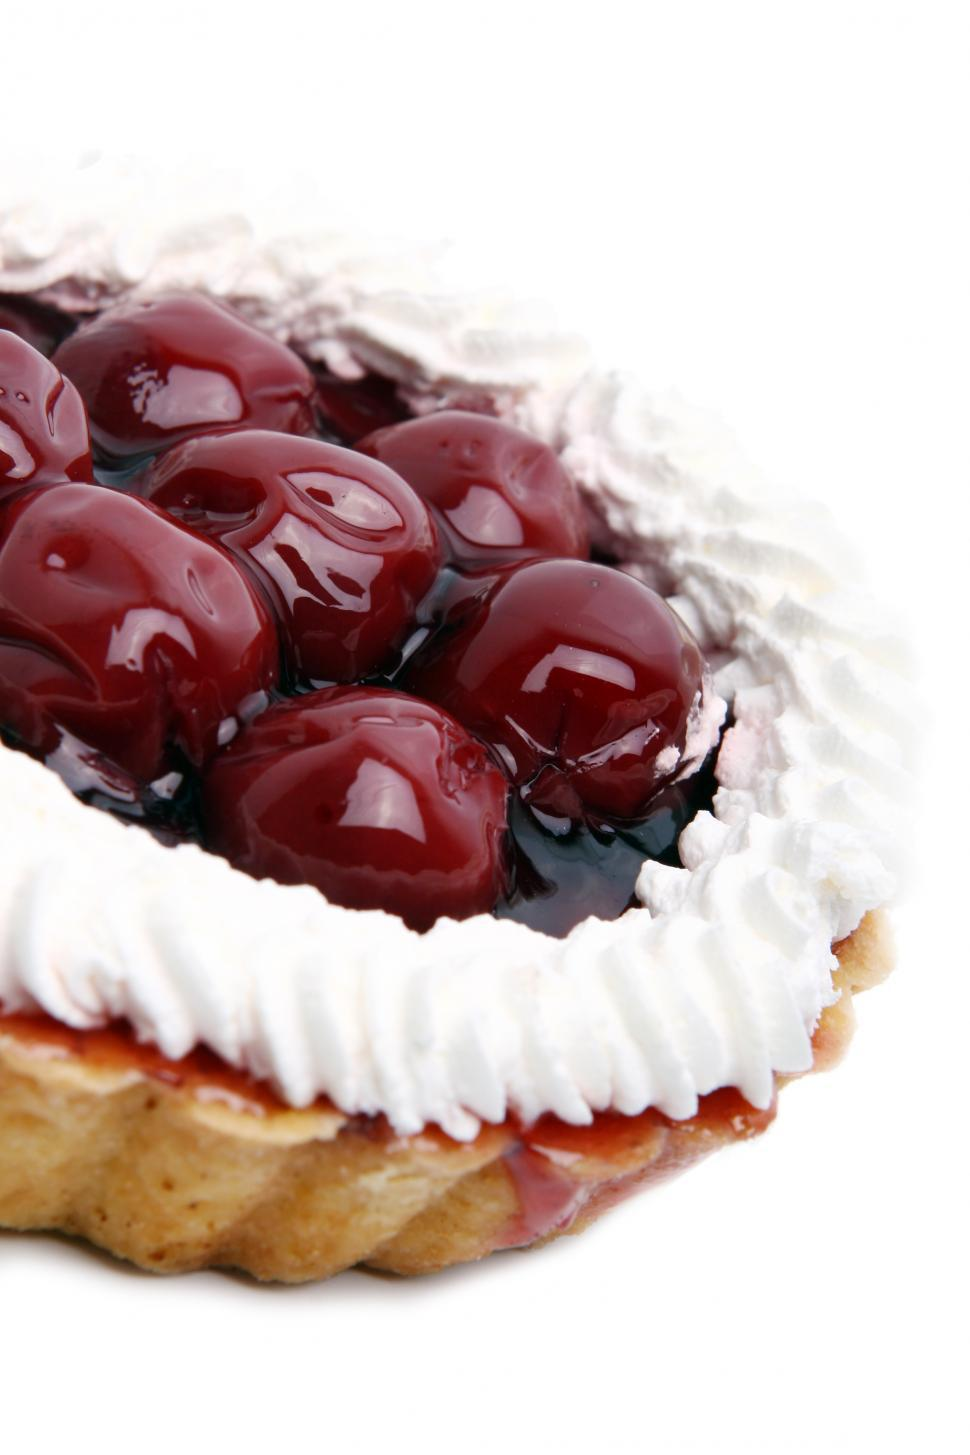 Download Free Stock HD Photo of fresh and tasty cherry cake on white Online